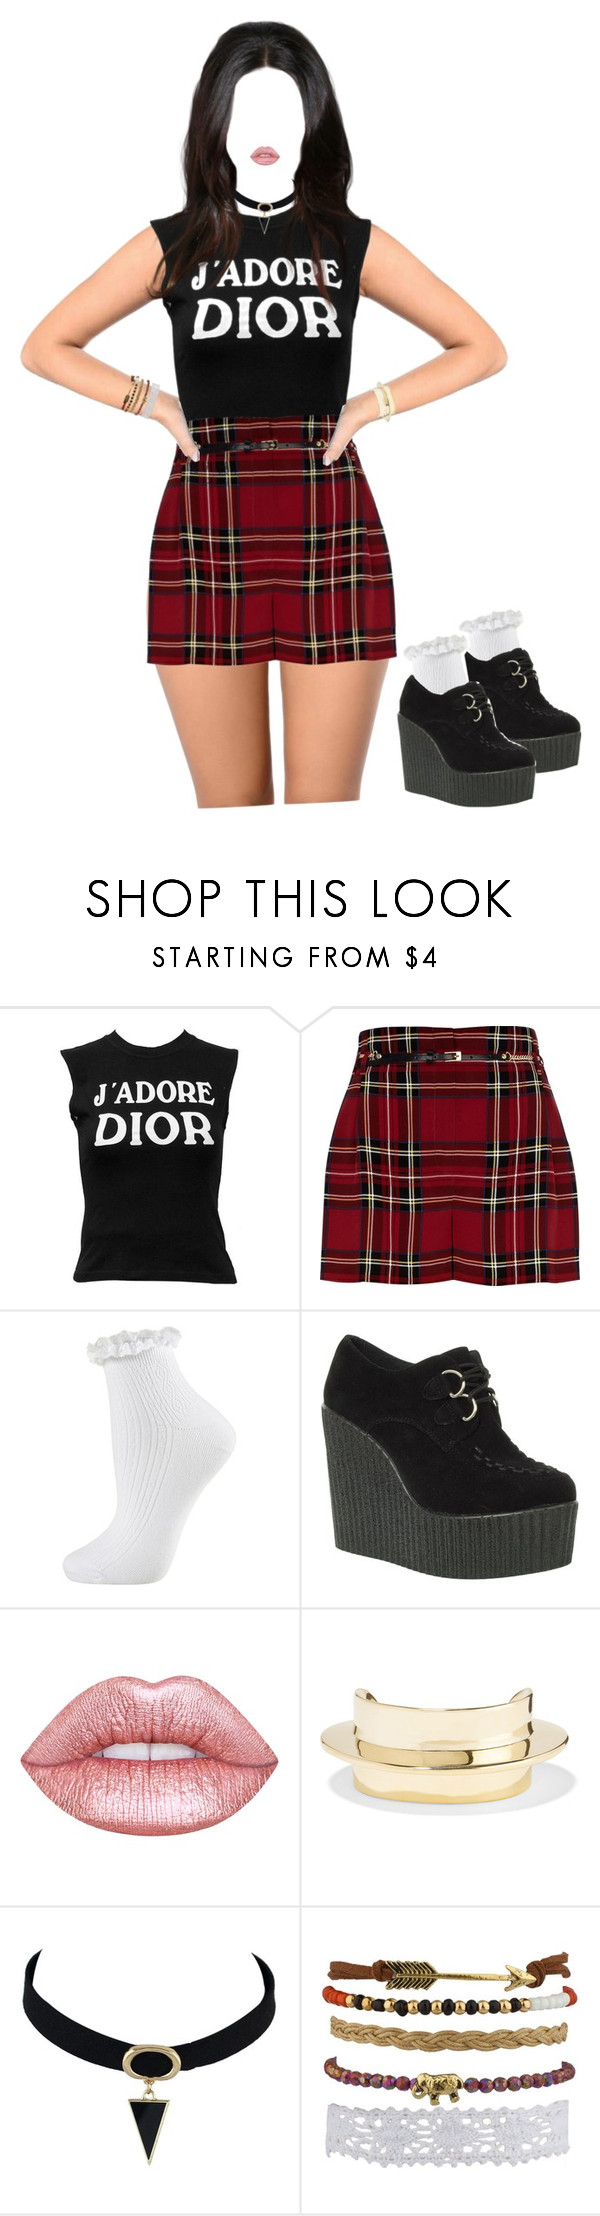 """Untitled #200"" by missprettyyoungthing95 ❤ liked on Polyvore featuring Christian Dior, River Island, Topshop, Truffle, Dreamgirl, Lime Crime and Lisa Eisner"